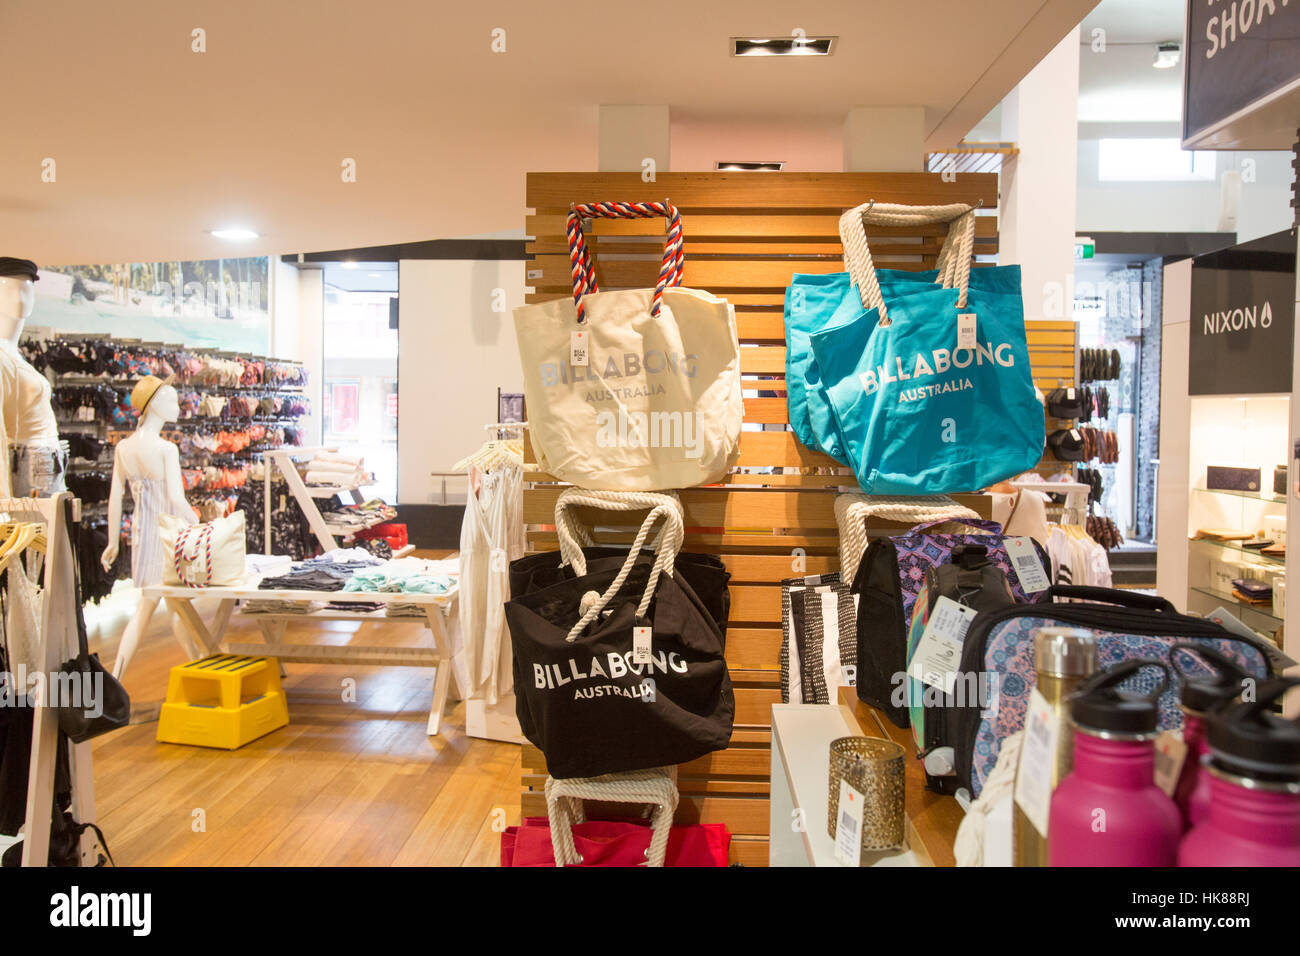 Billabong made beach bags and other surf clothing on sale inside ...